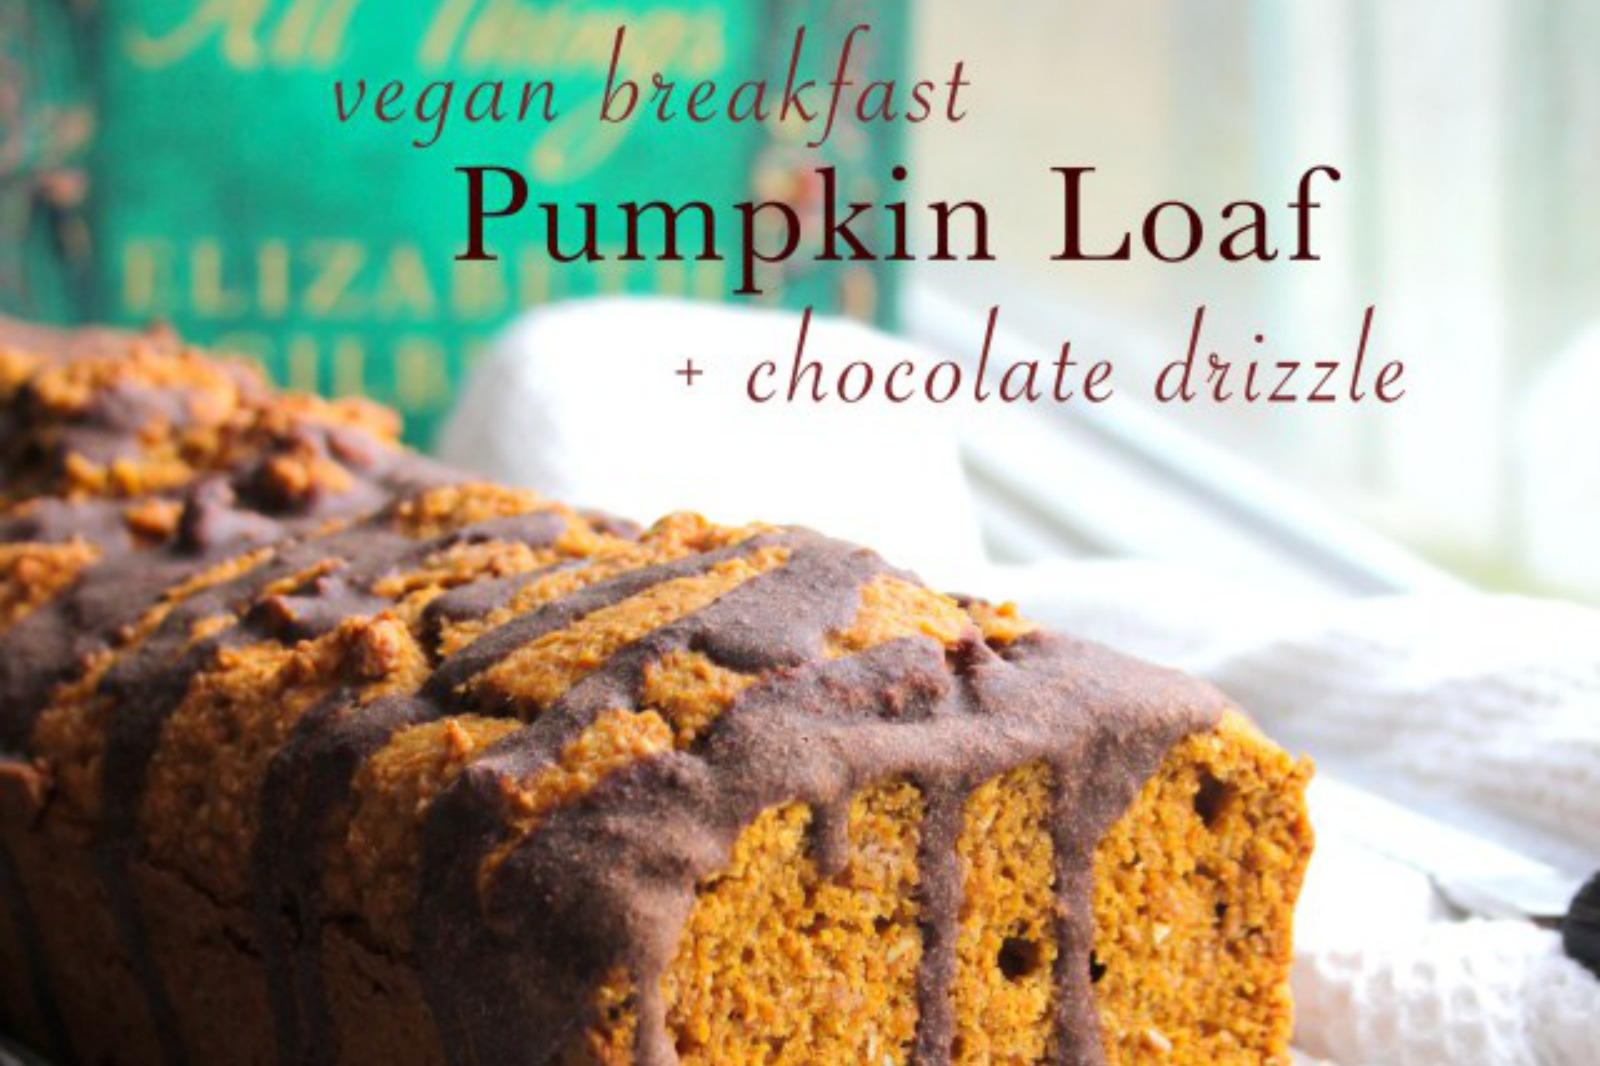 Pumpkin Breakfast Loaf with Chocolate Drizzle [Vegan]